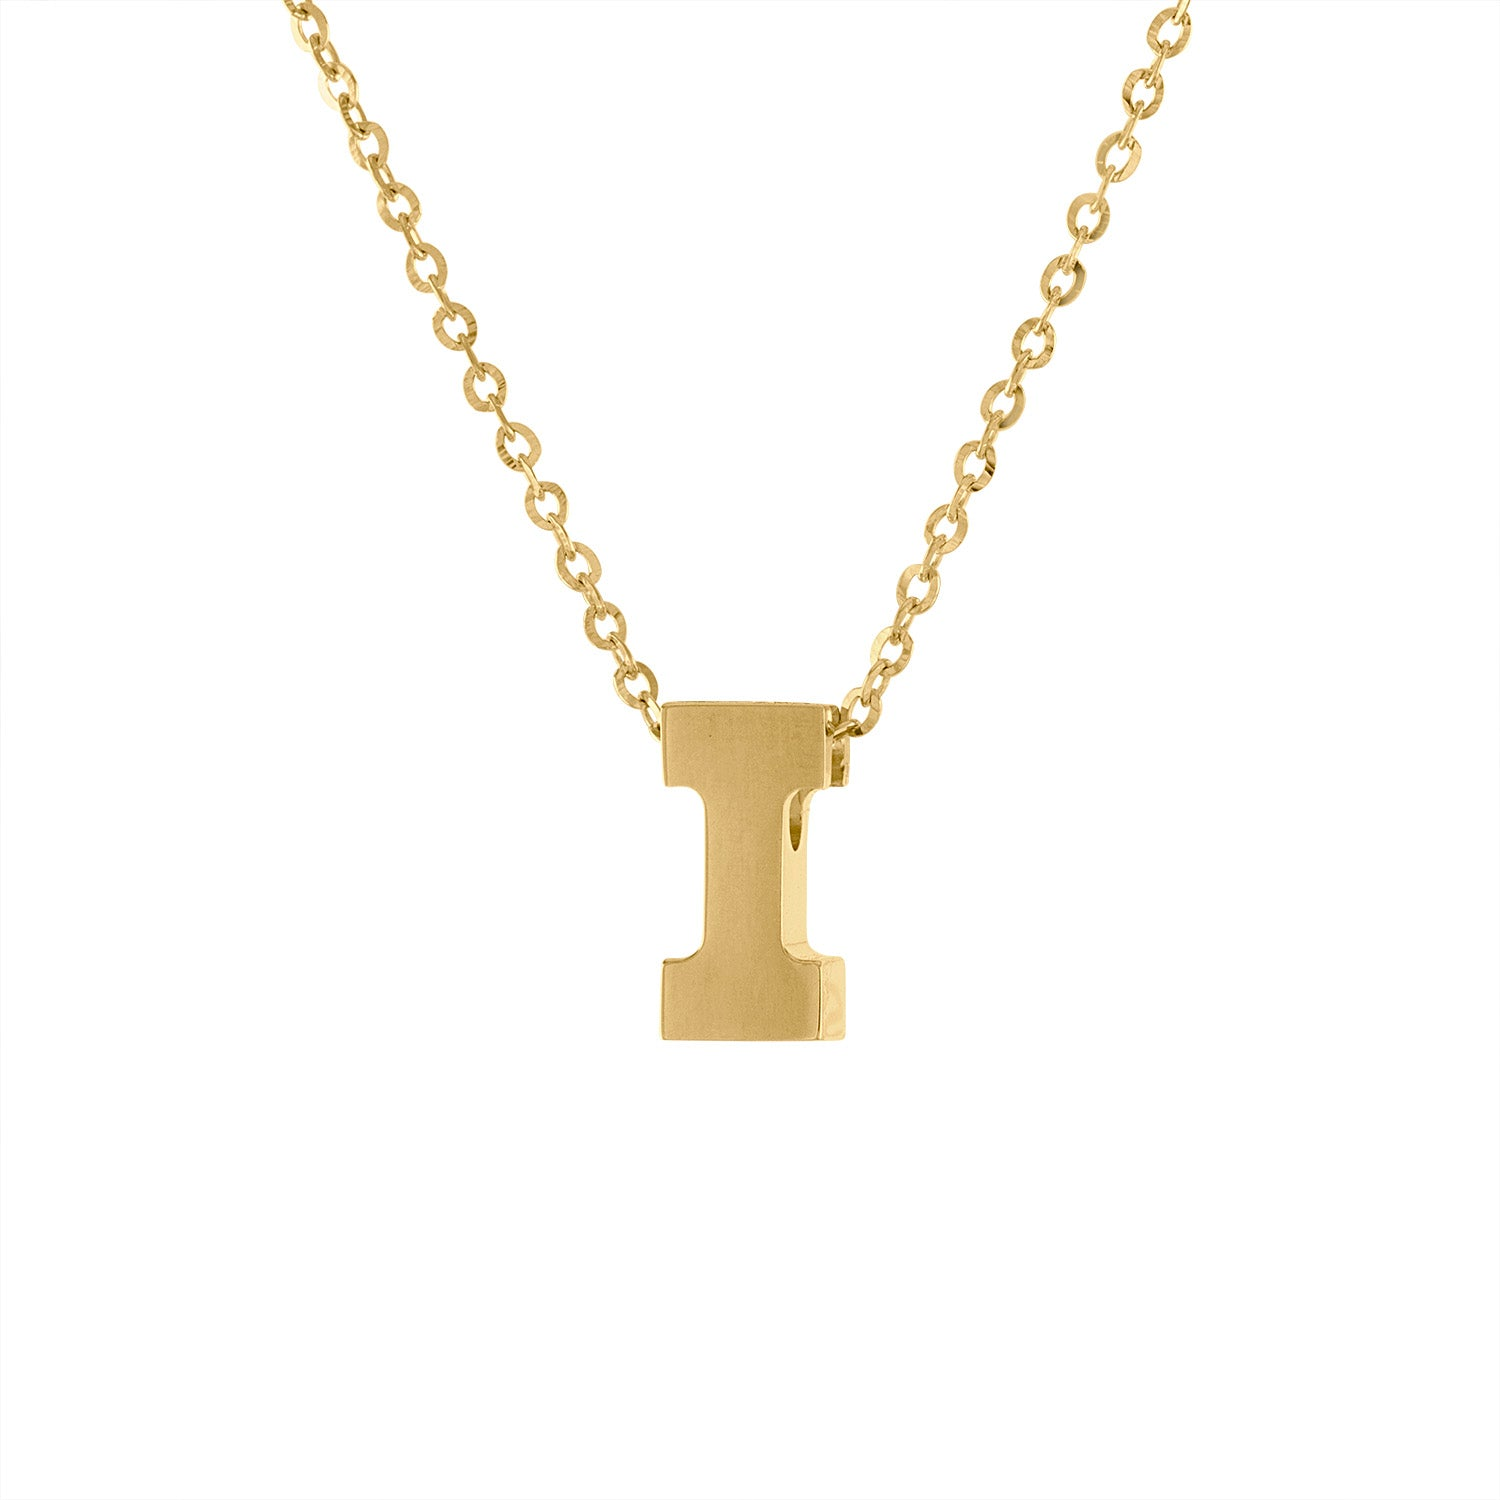 14k Yellow Gold plain initial I necklace